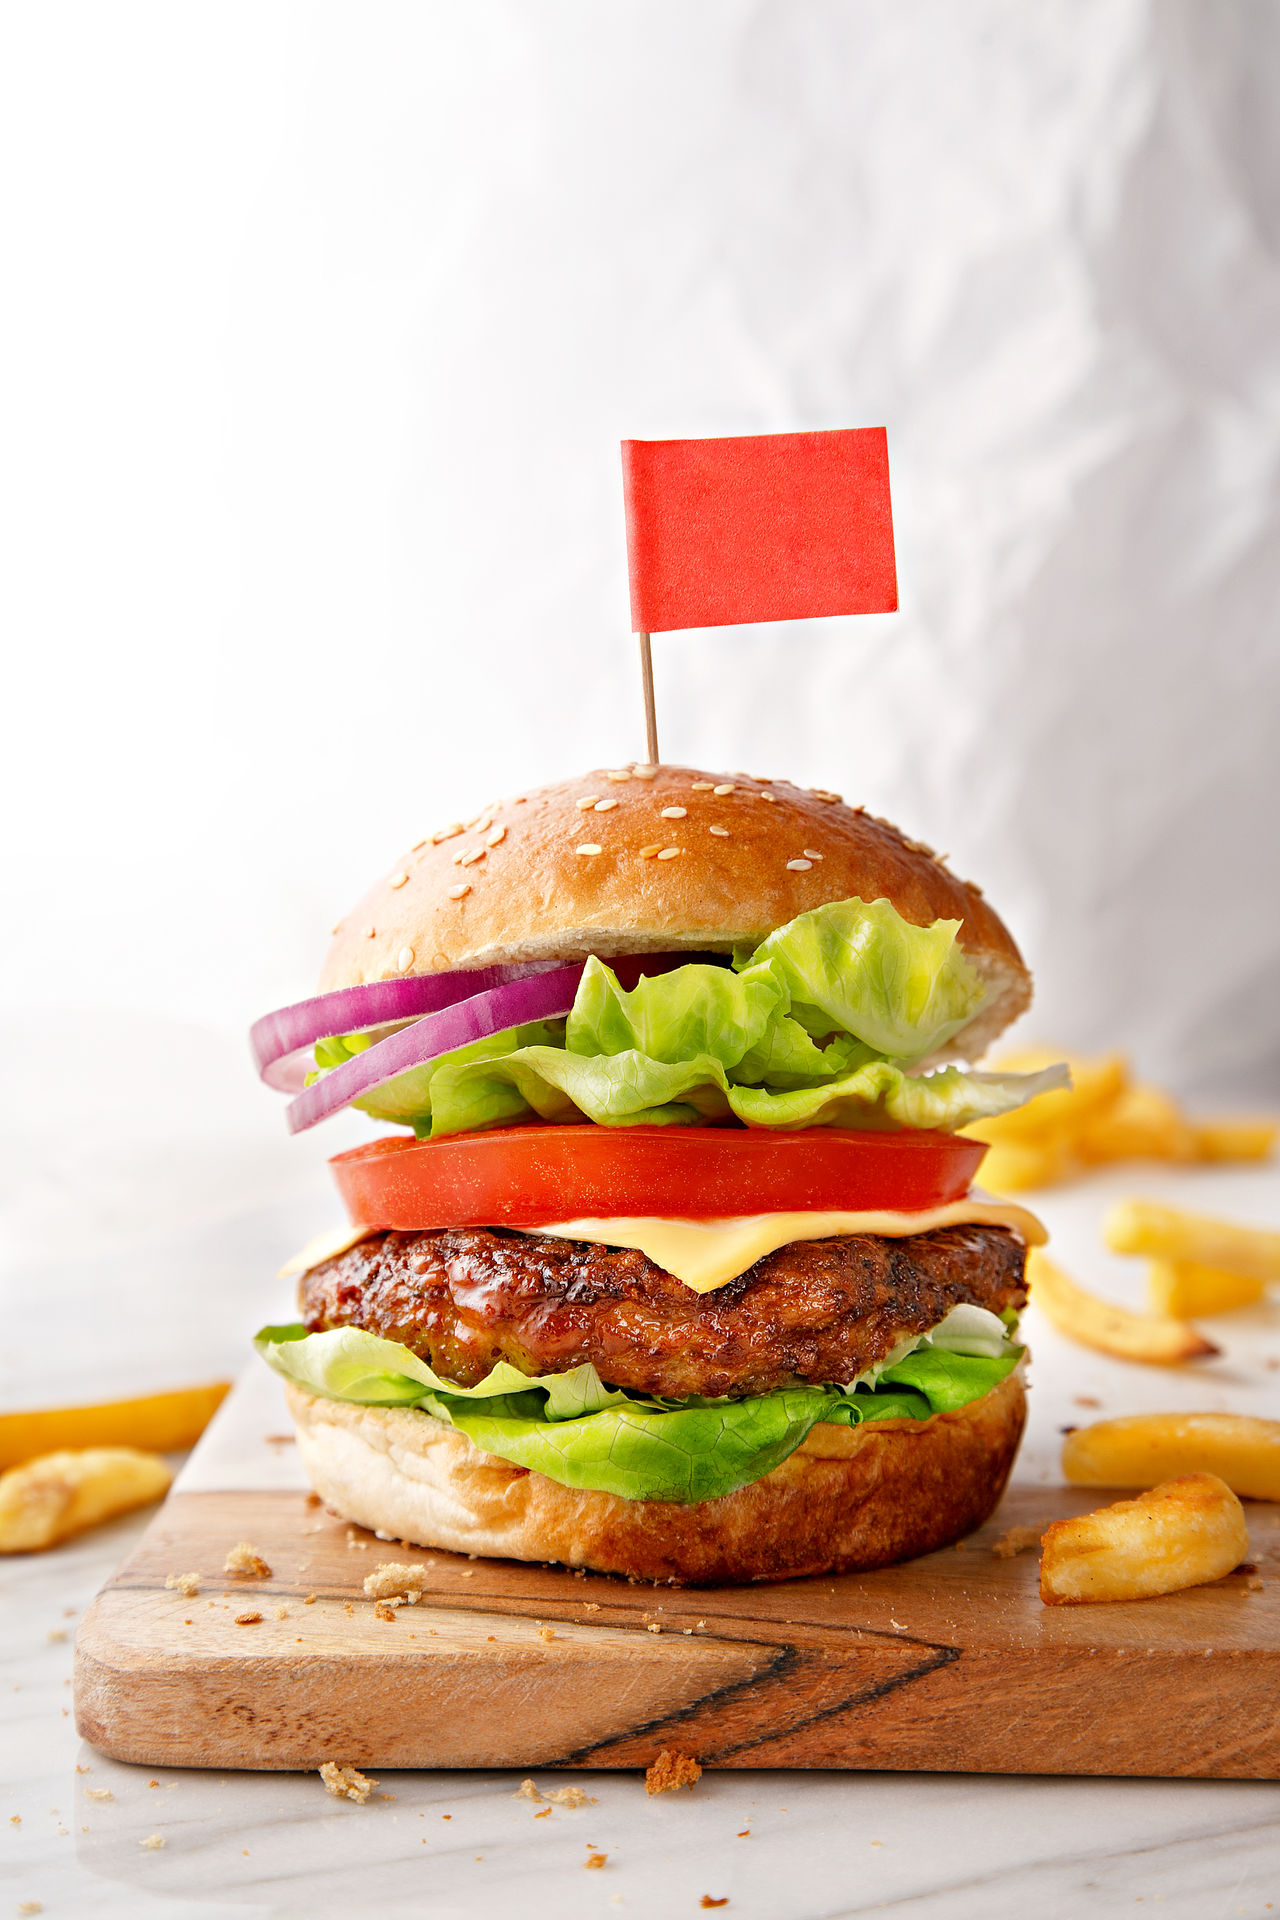 Tasty hamburger with french fries on a wooden board Bread Bun Close-up Fast Food Food Food And Drink Freshness Hamburger Indoors  Lettuce Meal Meat No People Ready-to-eat Sandwich Sesame Snack Studio Shot Take Out Food Tomato Unhealthy Eating